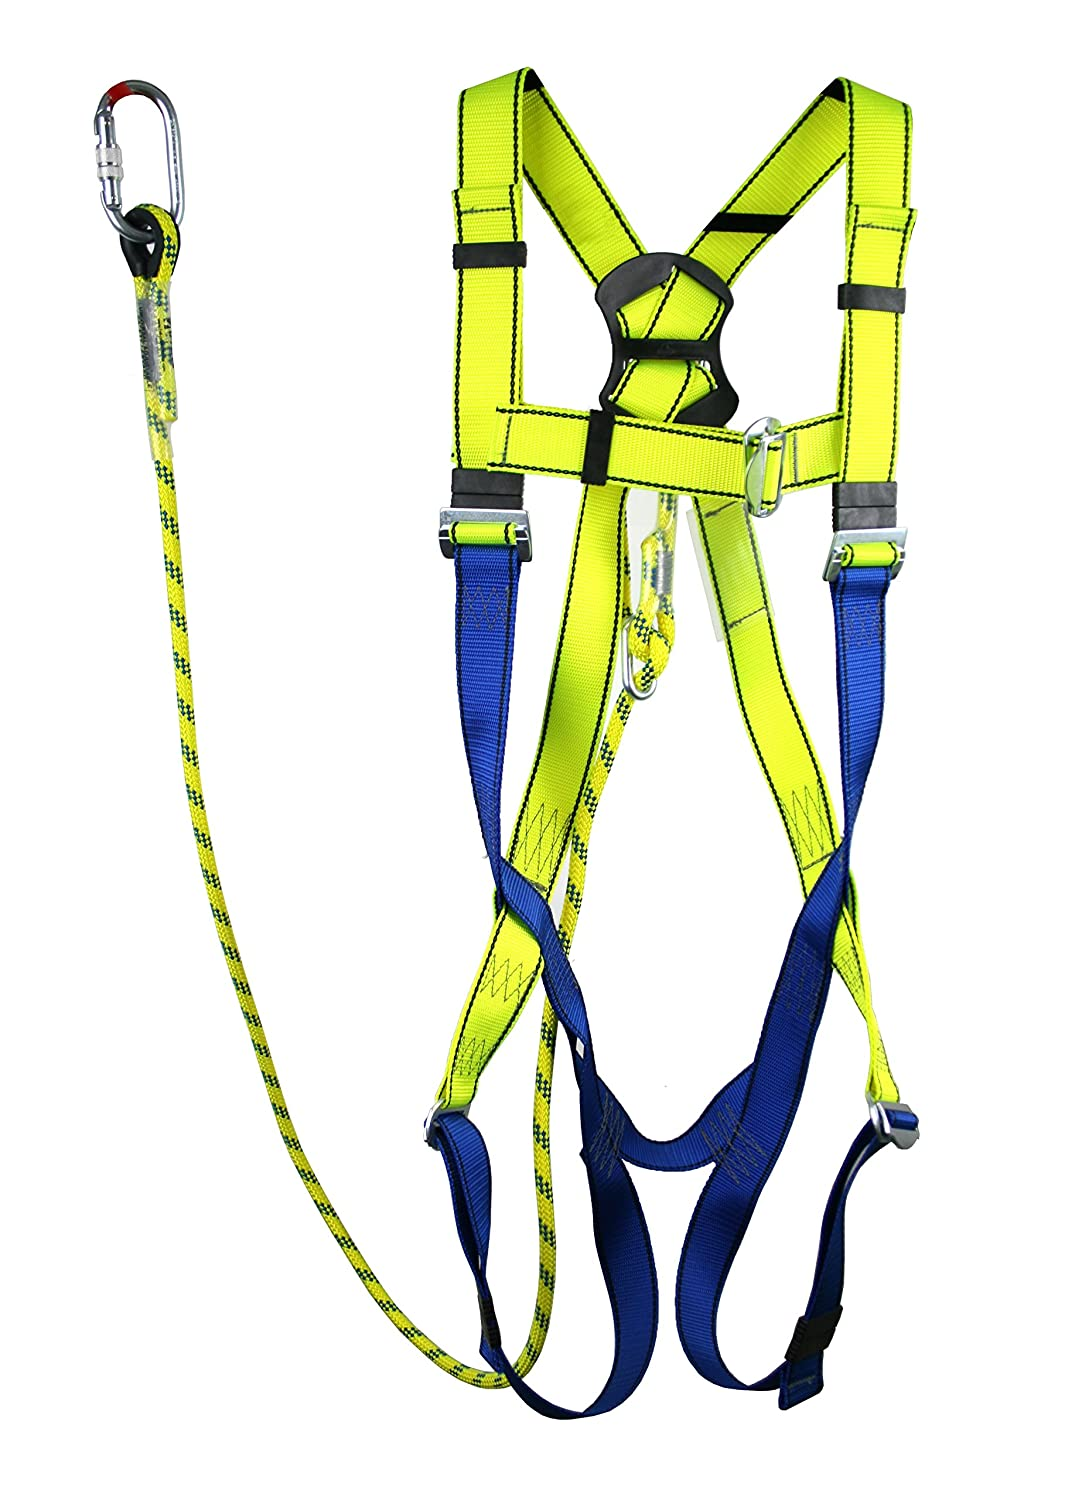 Full Body Height Safety Fall Arrest Restraint Harness Kit for Access Platform Cherry Picker Restraint, Fully Adjustable (Small) SafetyLiftinGear